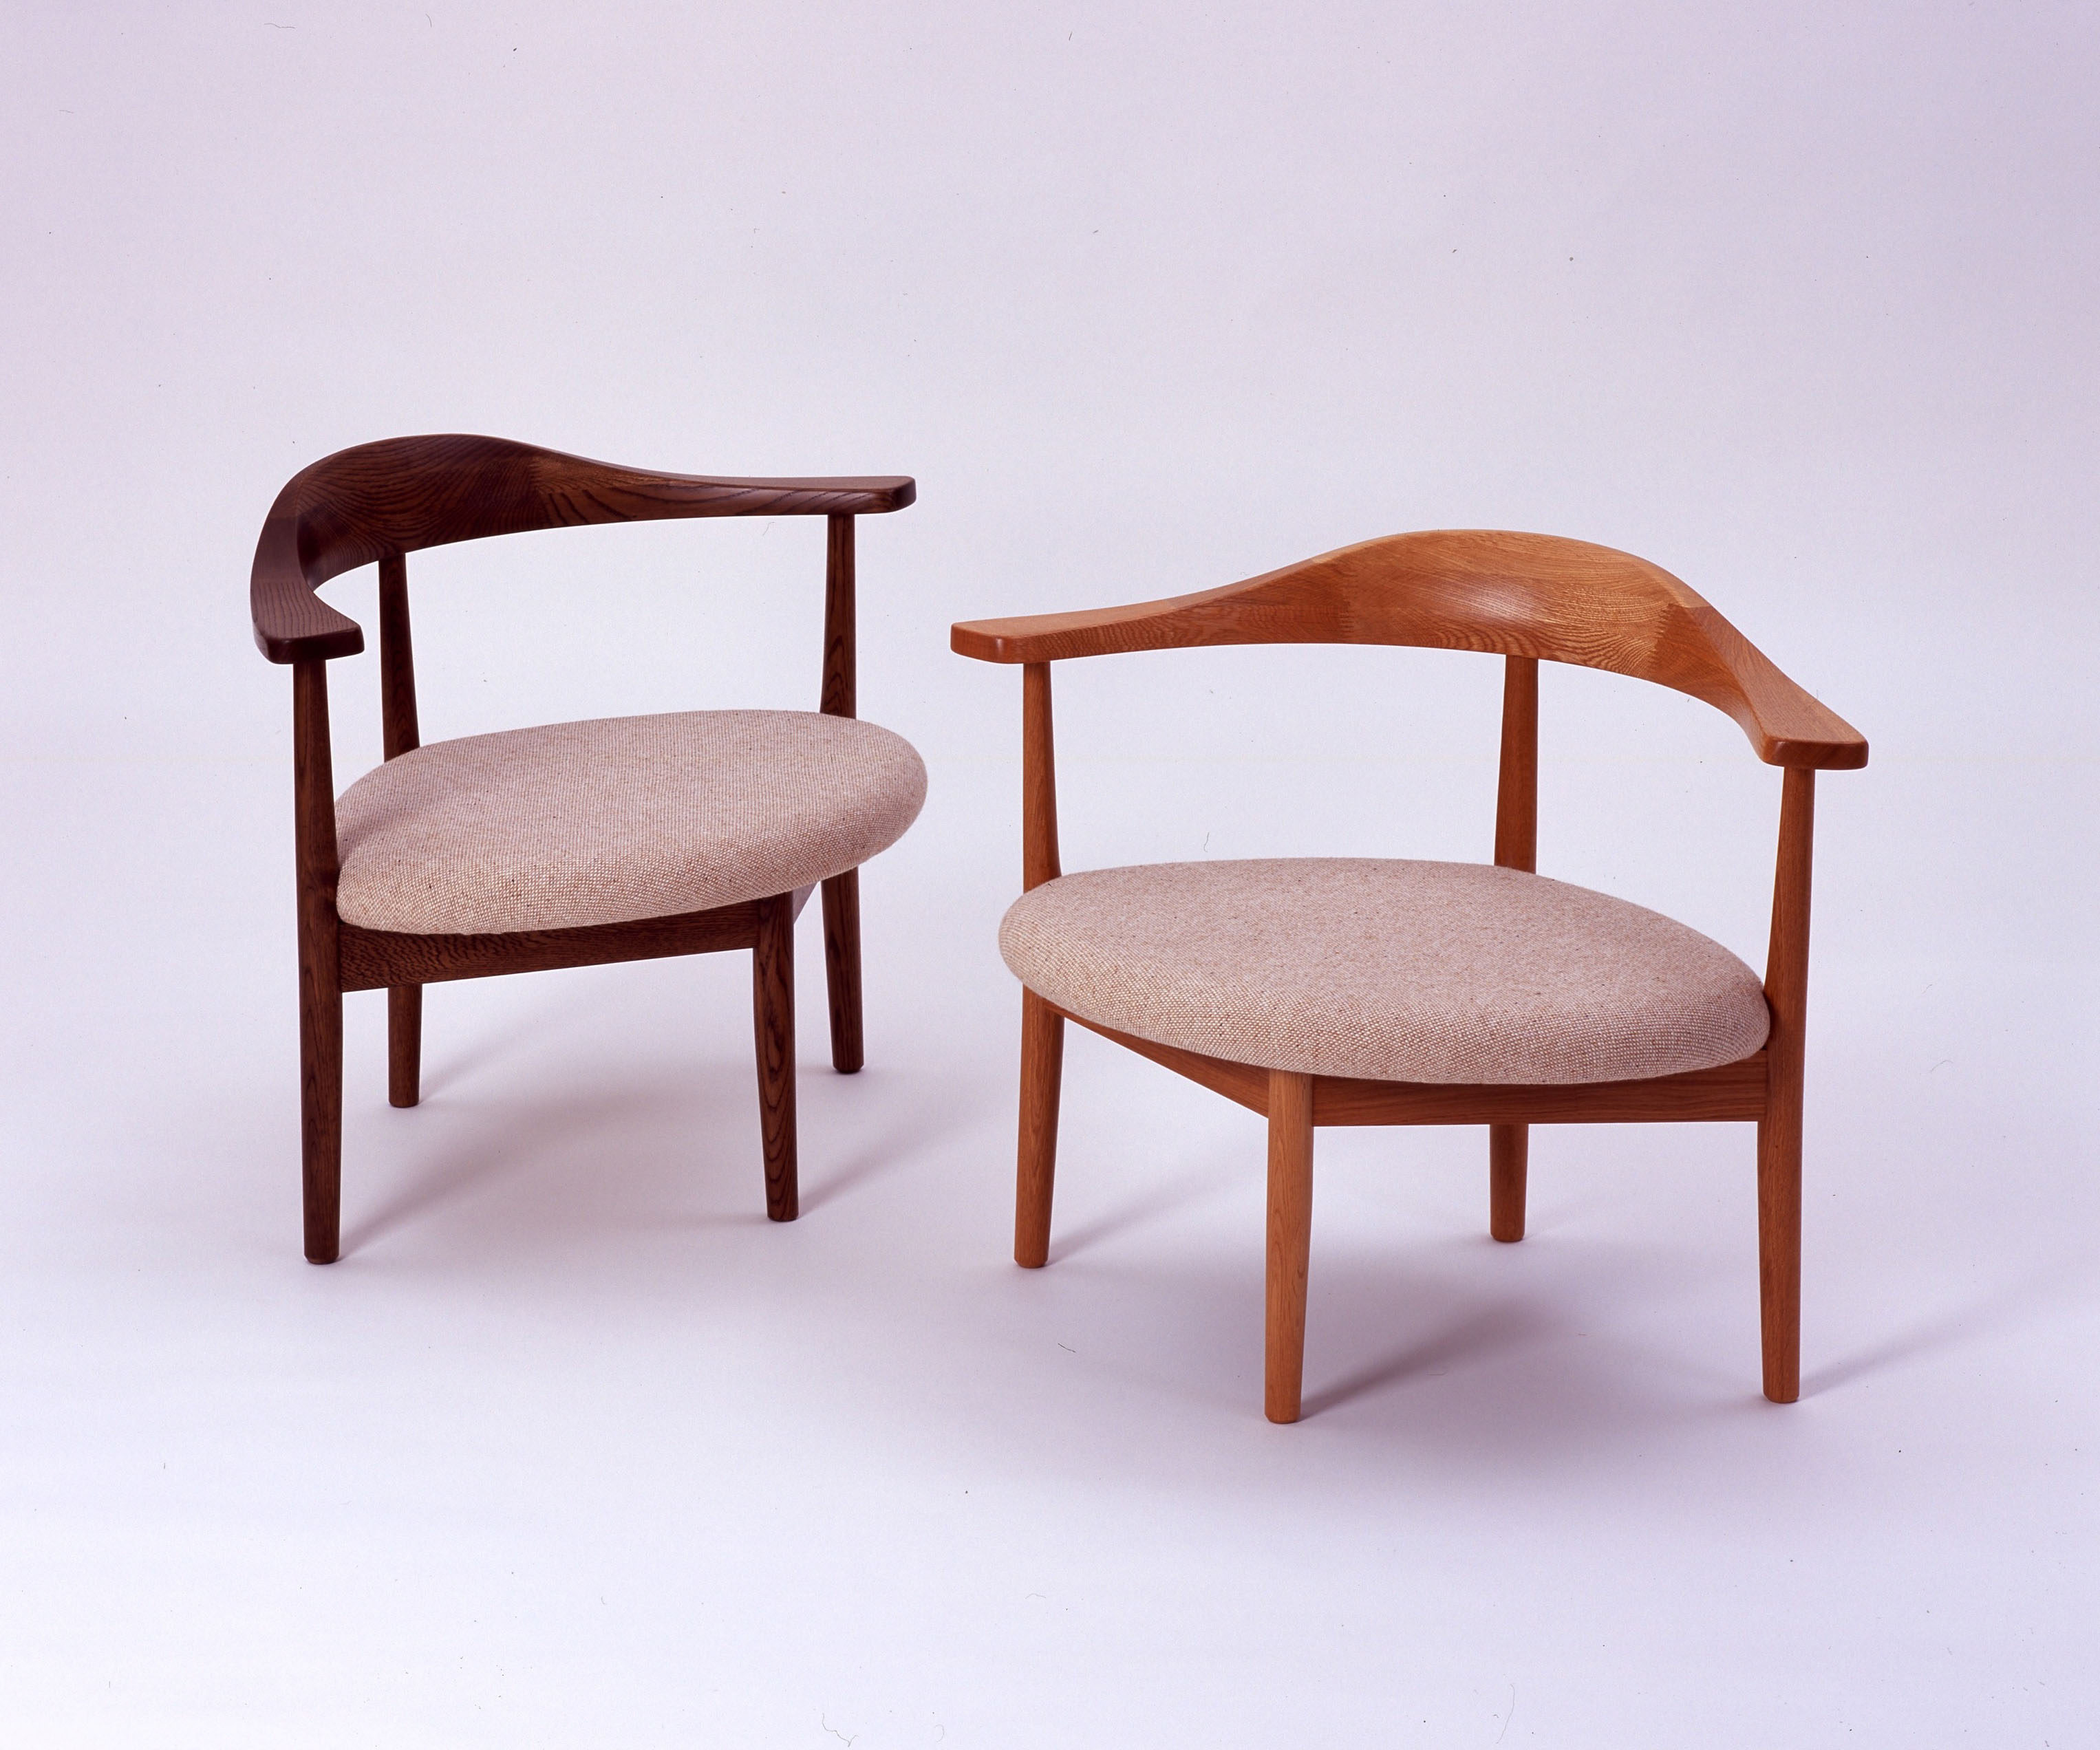 'Chairs for Men' (1985), designed by Yoshio Akioka